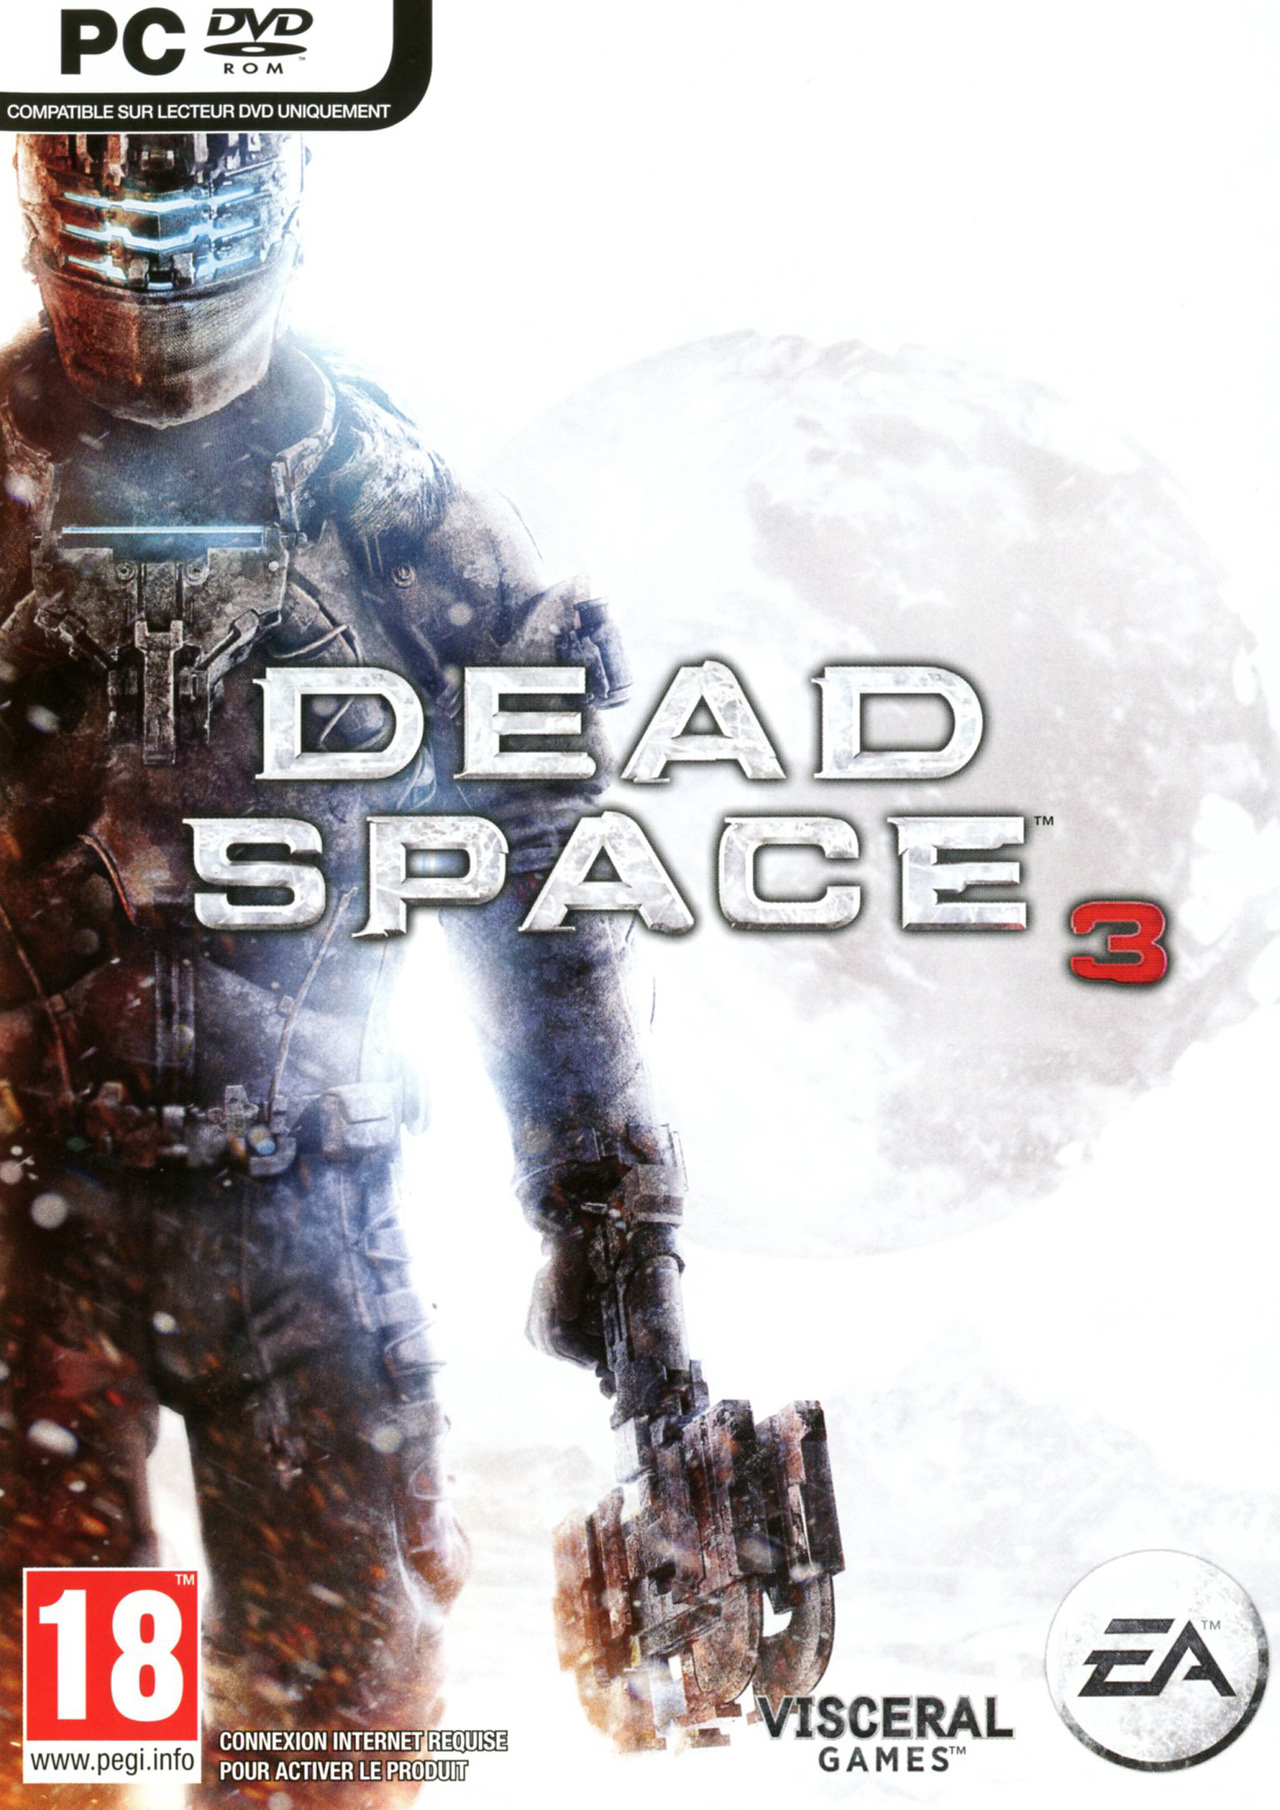 Dead Space 3 Xbox Ps3 Pc jtag rgh dvd iso Xbox360 Wii Nintendo Mac Linux